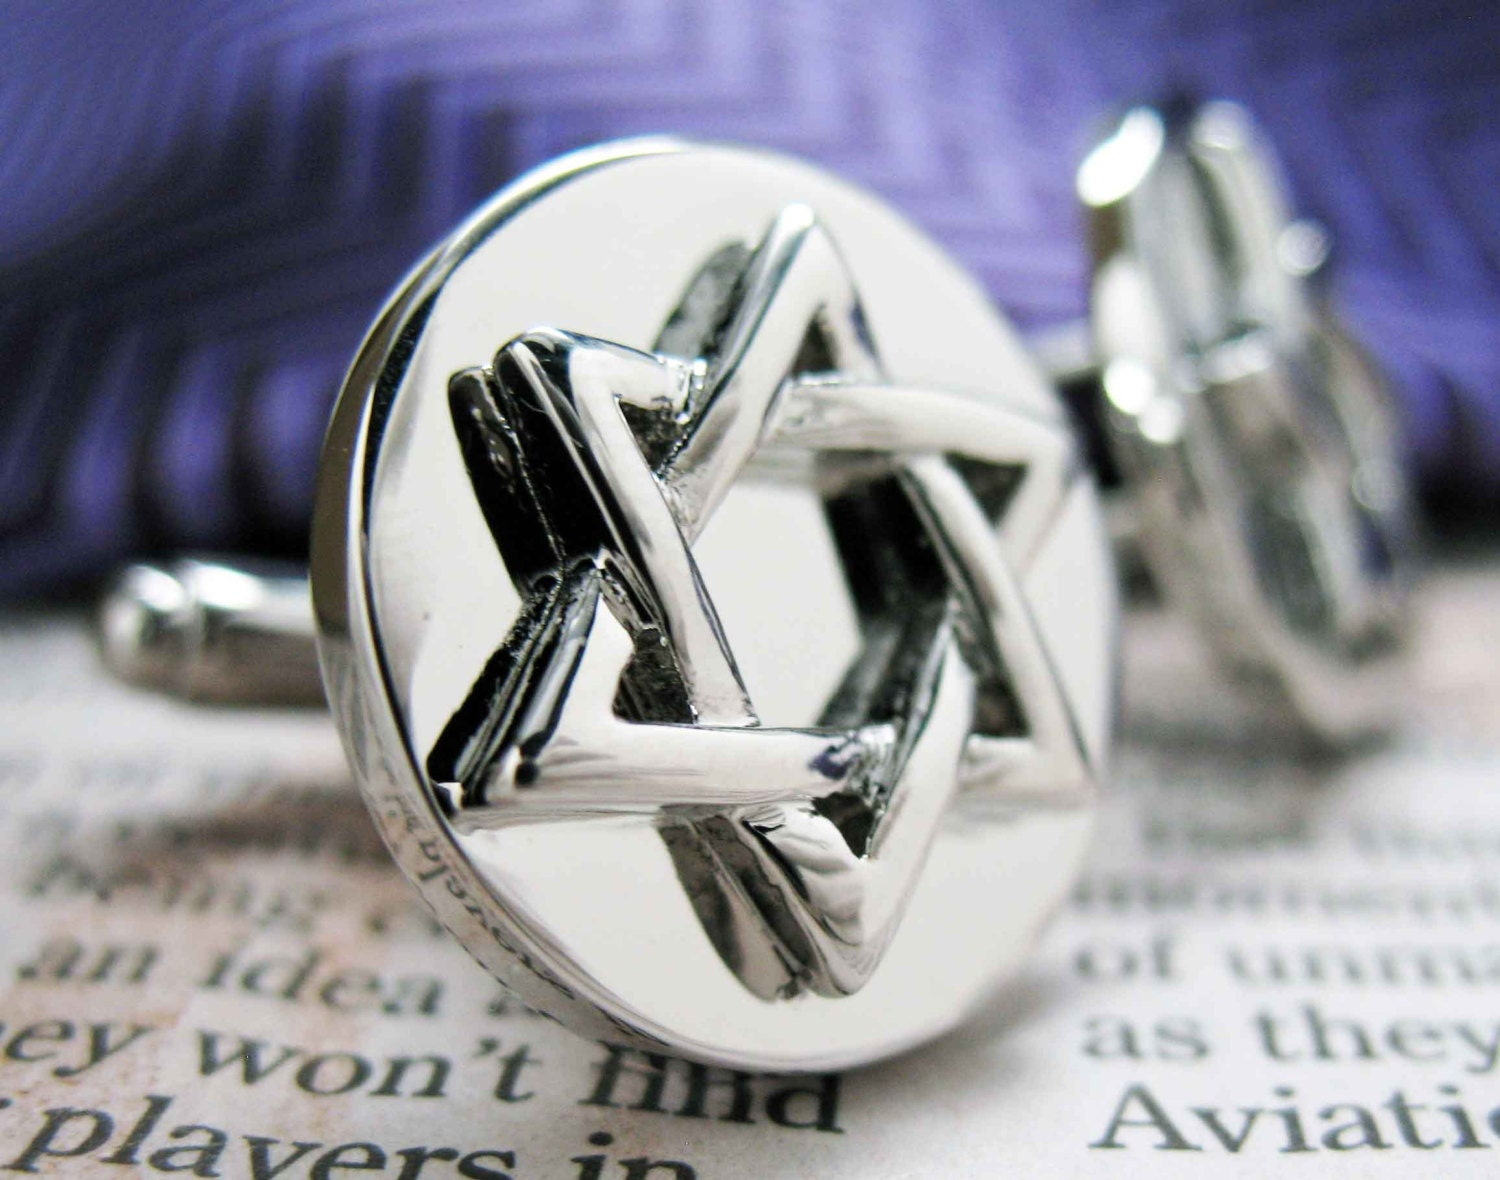 Star of david cufflinks jewish religious symbols hanukkah faith star of david cufflinks jewish religious symbols hanukkah faith bar mitzvah shield of david magen david biocorpaavc Gallery